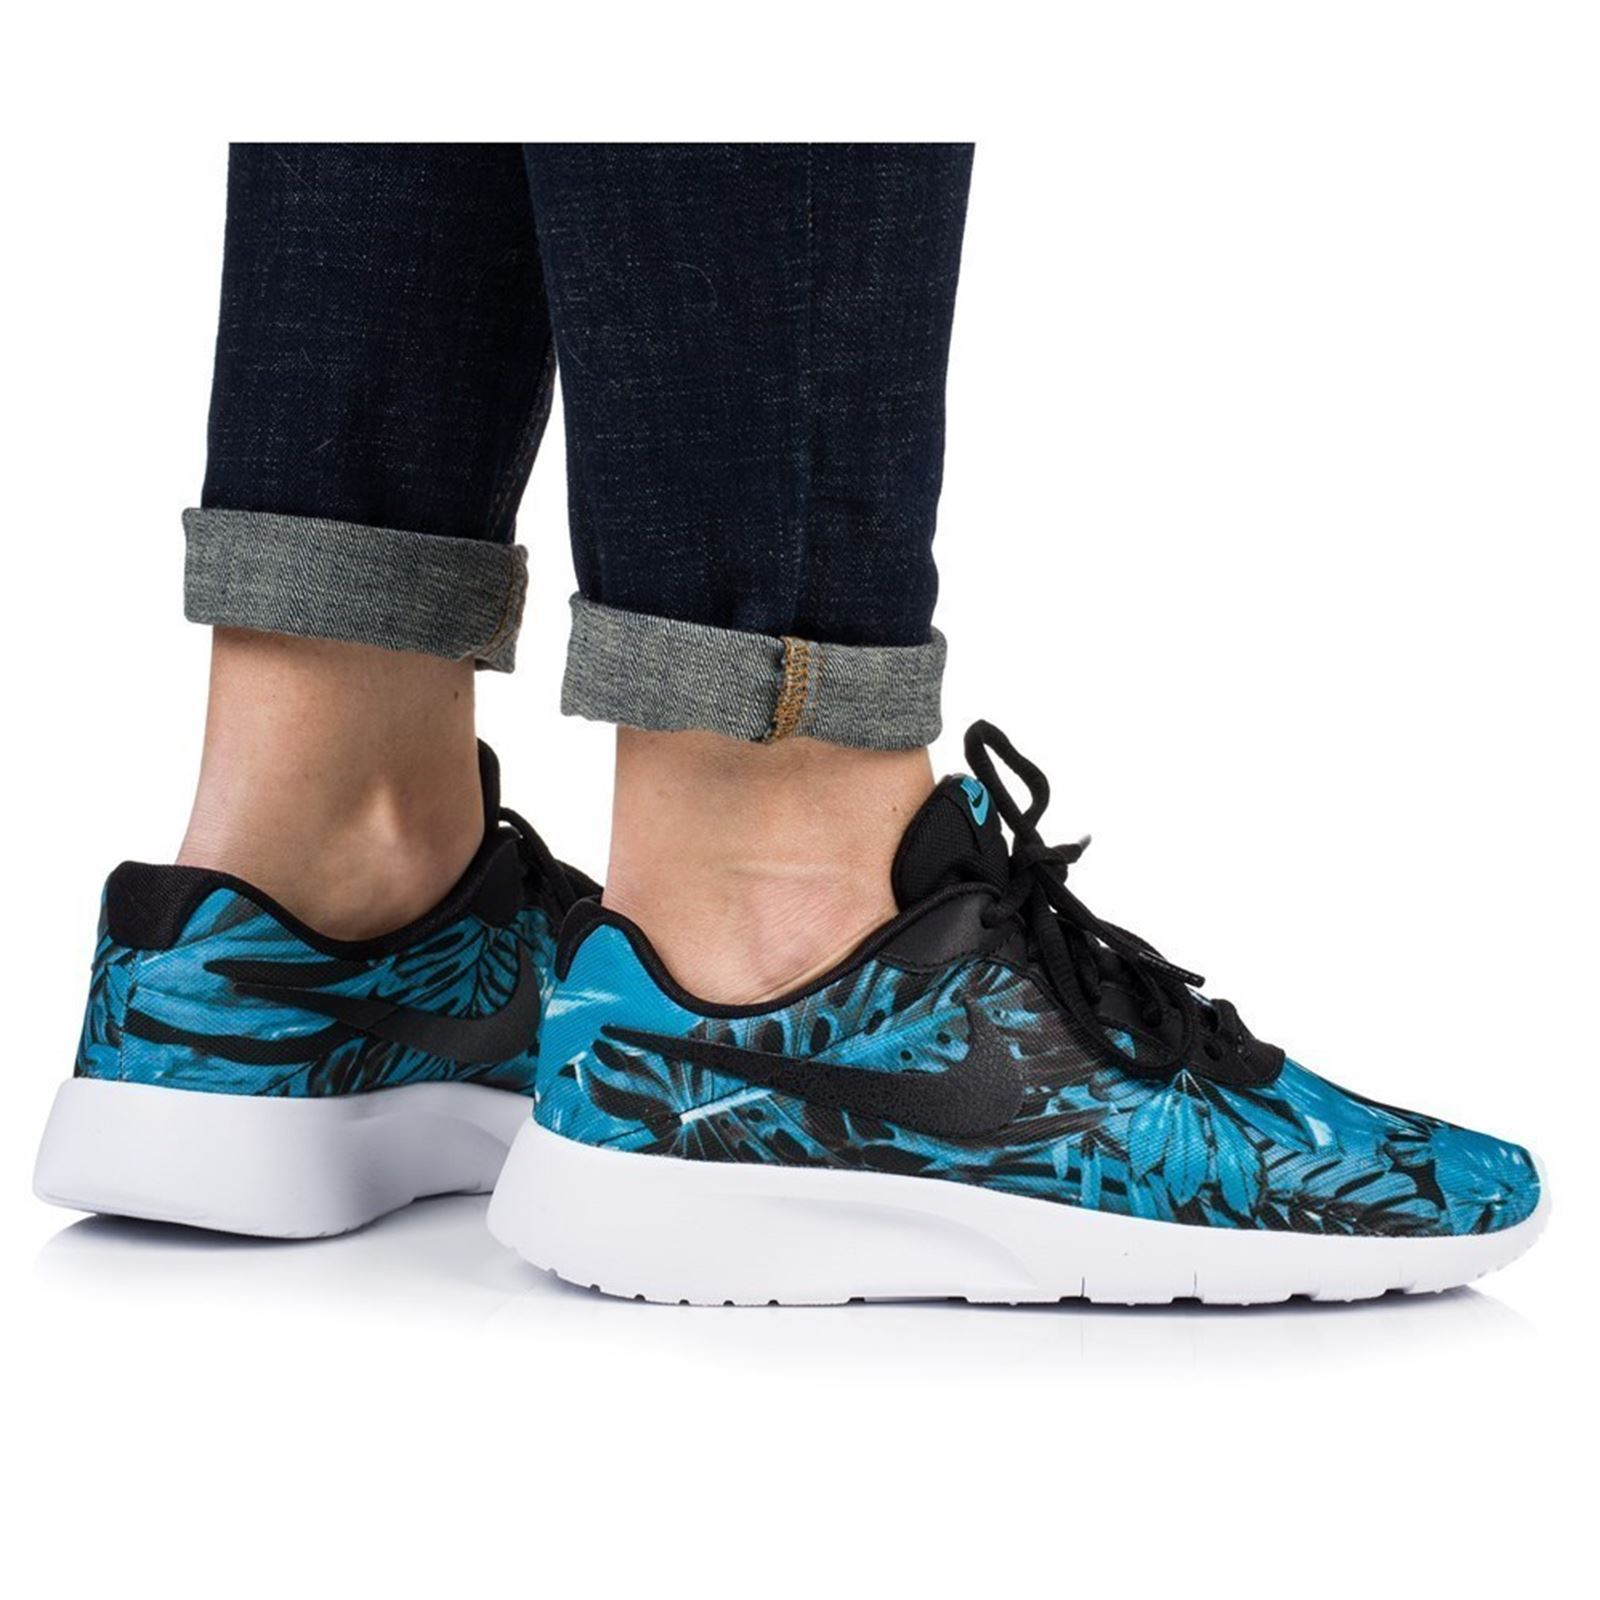 reputable site 5d348 22ebb NIKE Tanjun print gs - Baskets basses - bleu